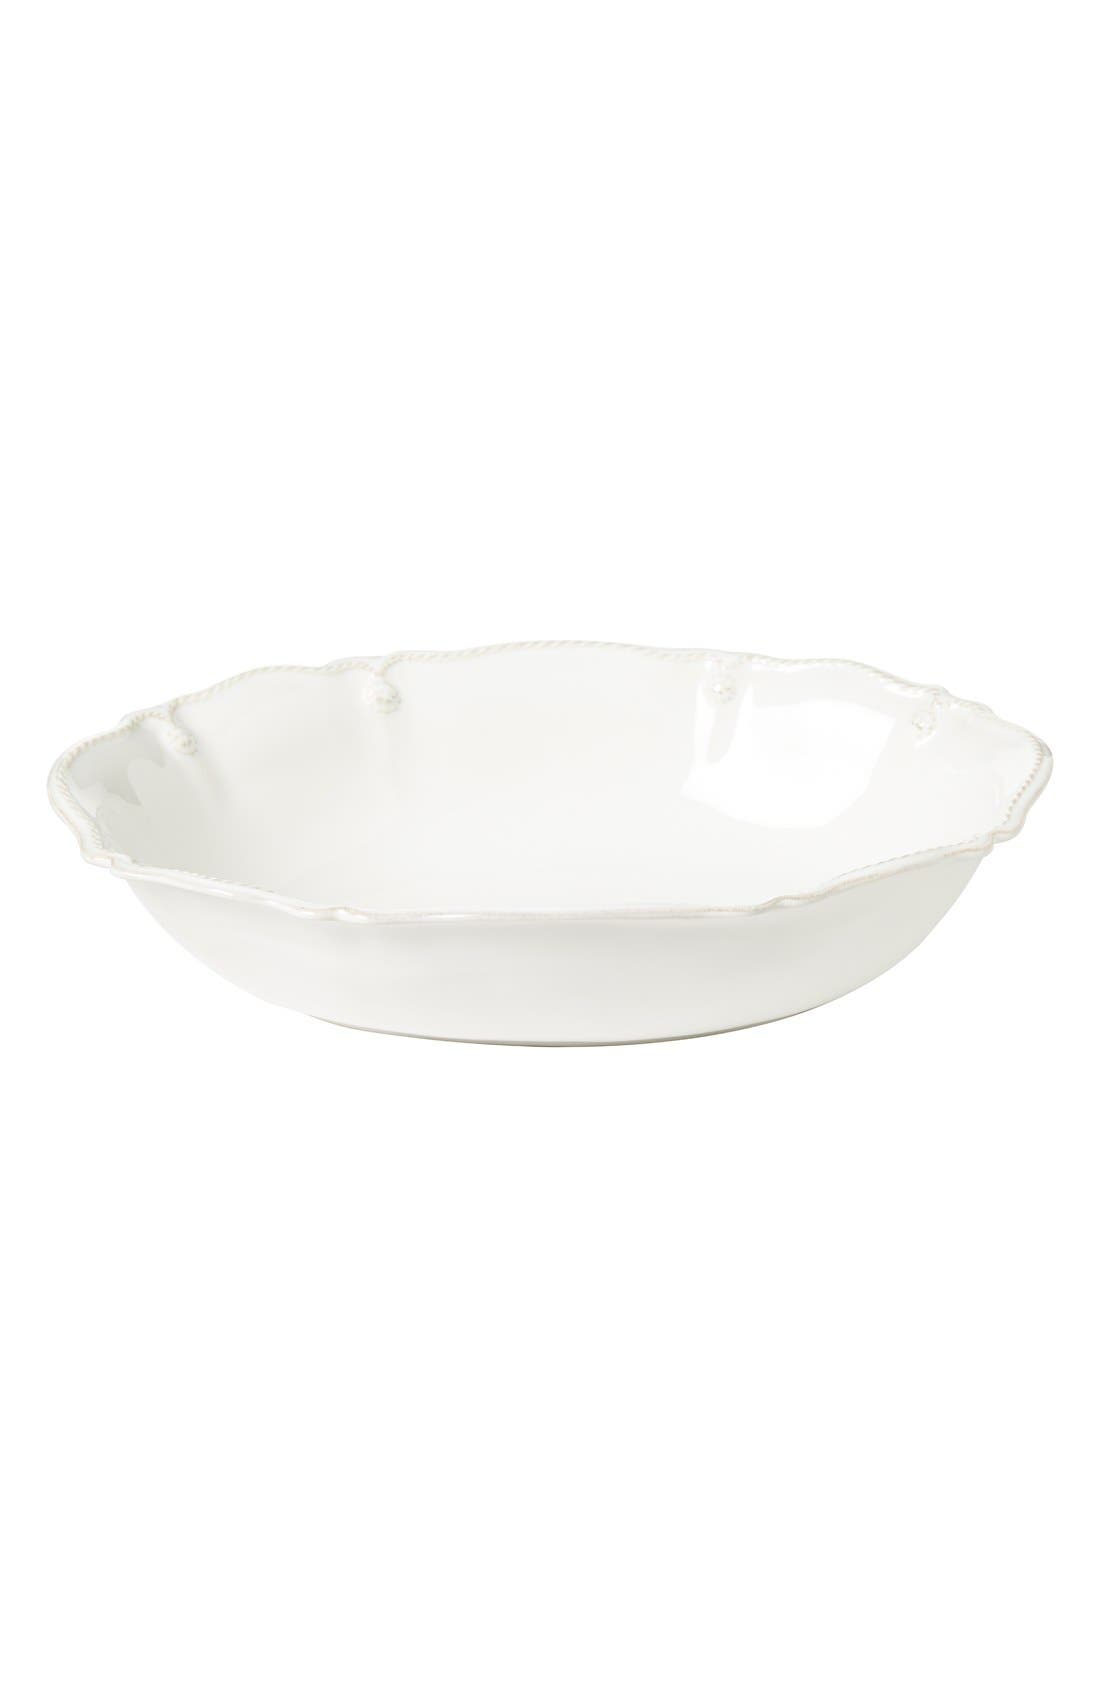 'Berry and Thread' Oval Serving Bowl,                             Main thumbnail 1, color,                             Whitewash